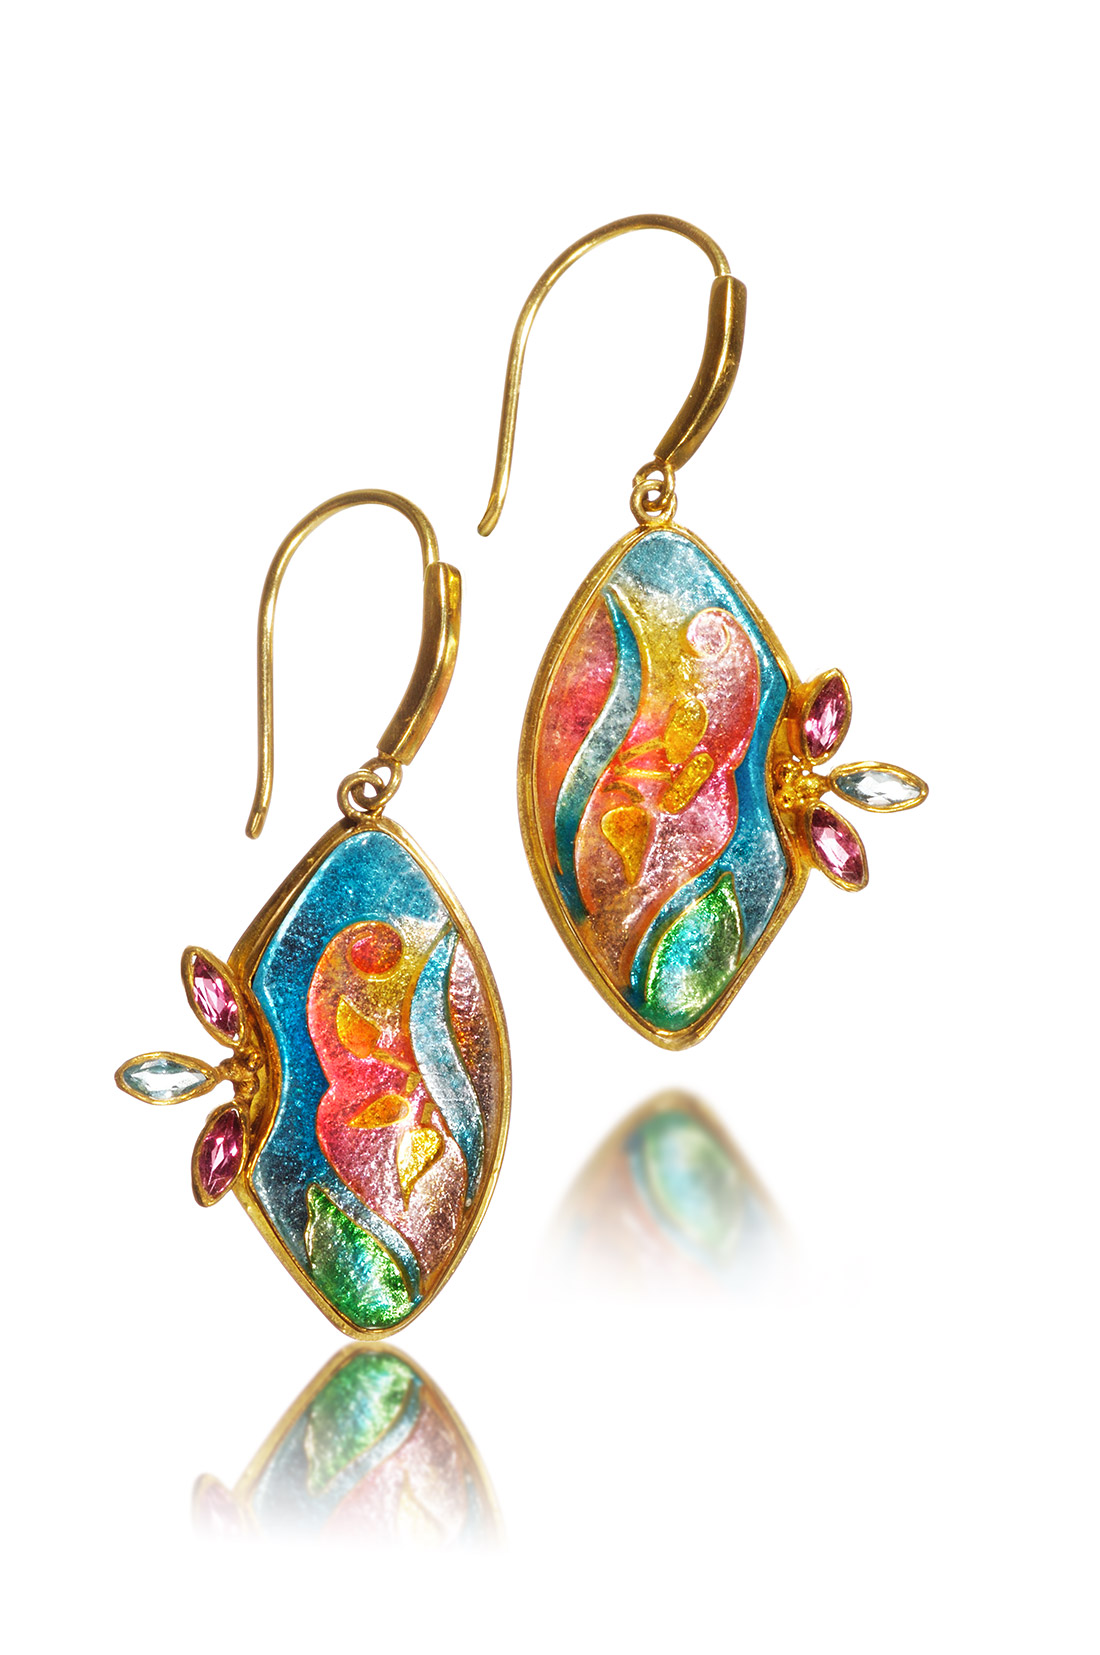 Cloisonne Jewelry | Lilium | Enamel Jewelry created by Patsy Croft